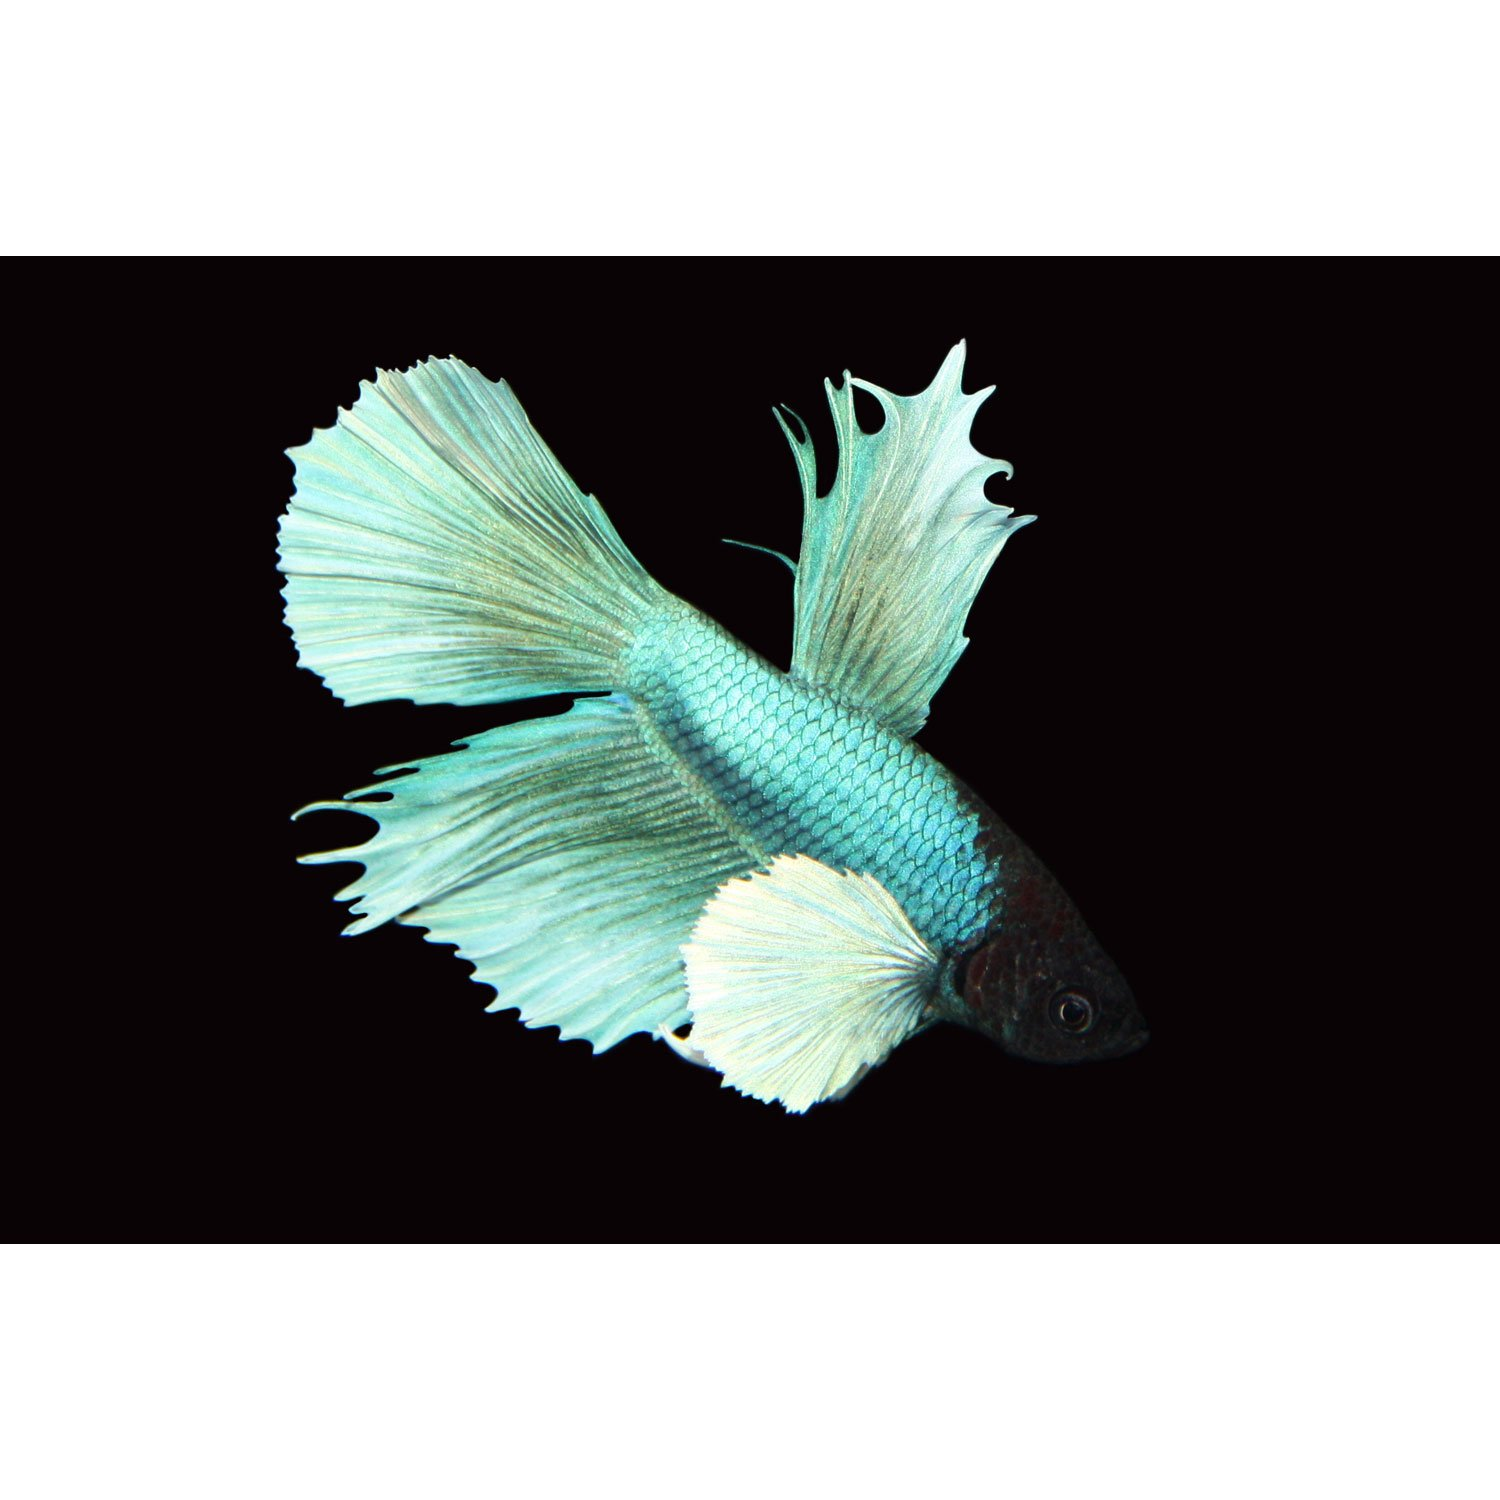 Elephant ear delta tail betta fish petco for Types of betta fish petco